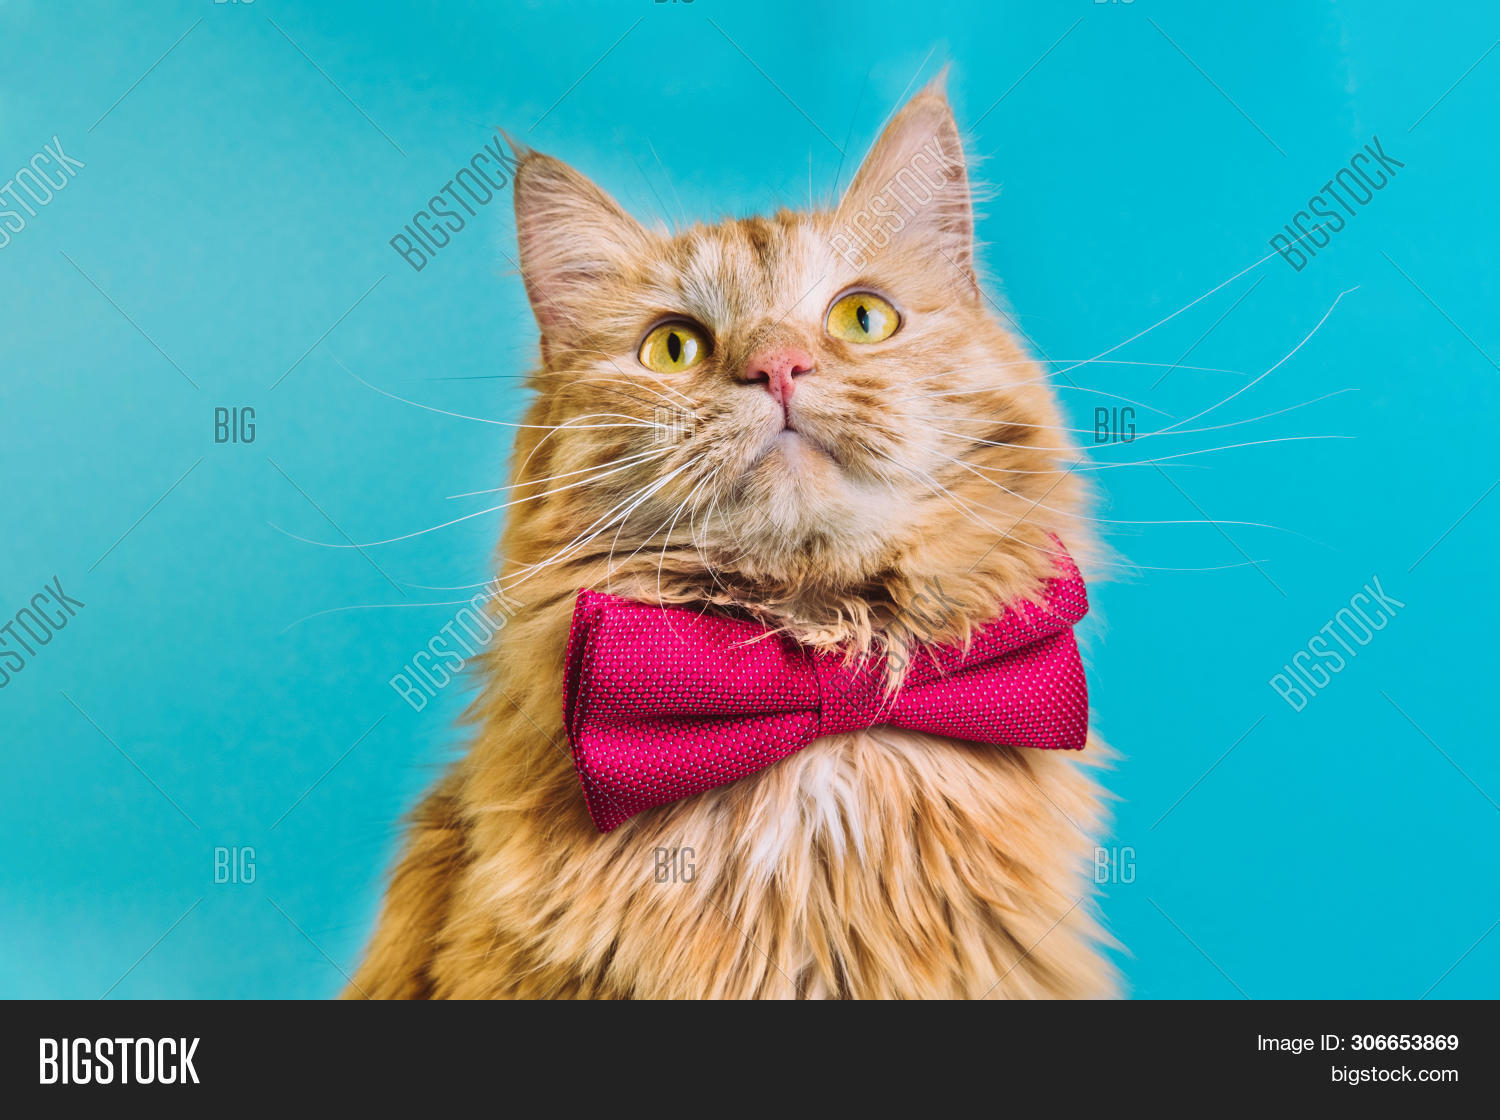 Red Cat With Pink Bowtie Front View. Gentleman-like Fluffy Domestic Animal On Turquoise Background.